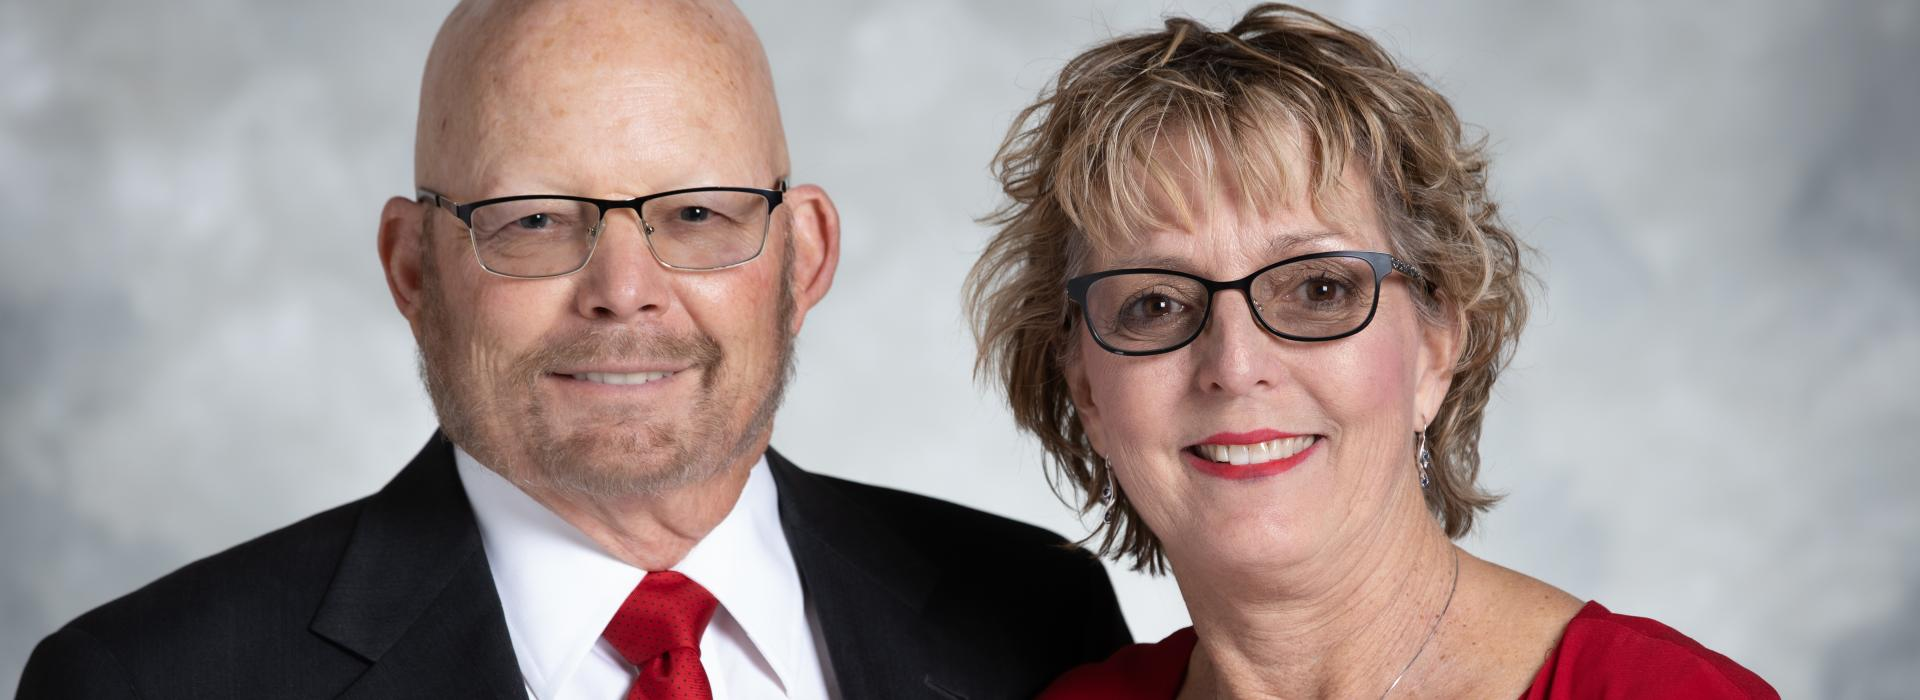 Dr. Michael Sellers '78 and his wife Elizabeth